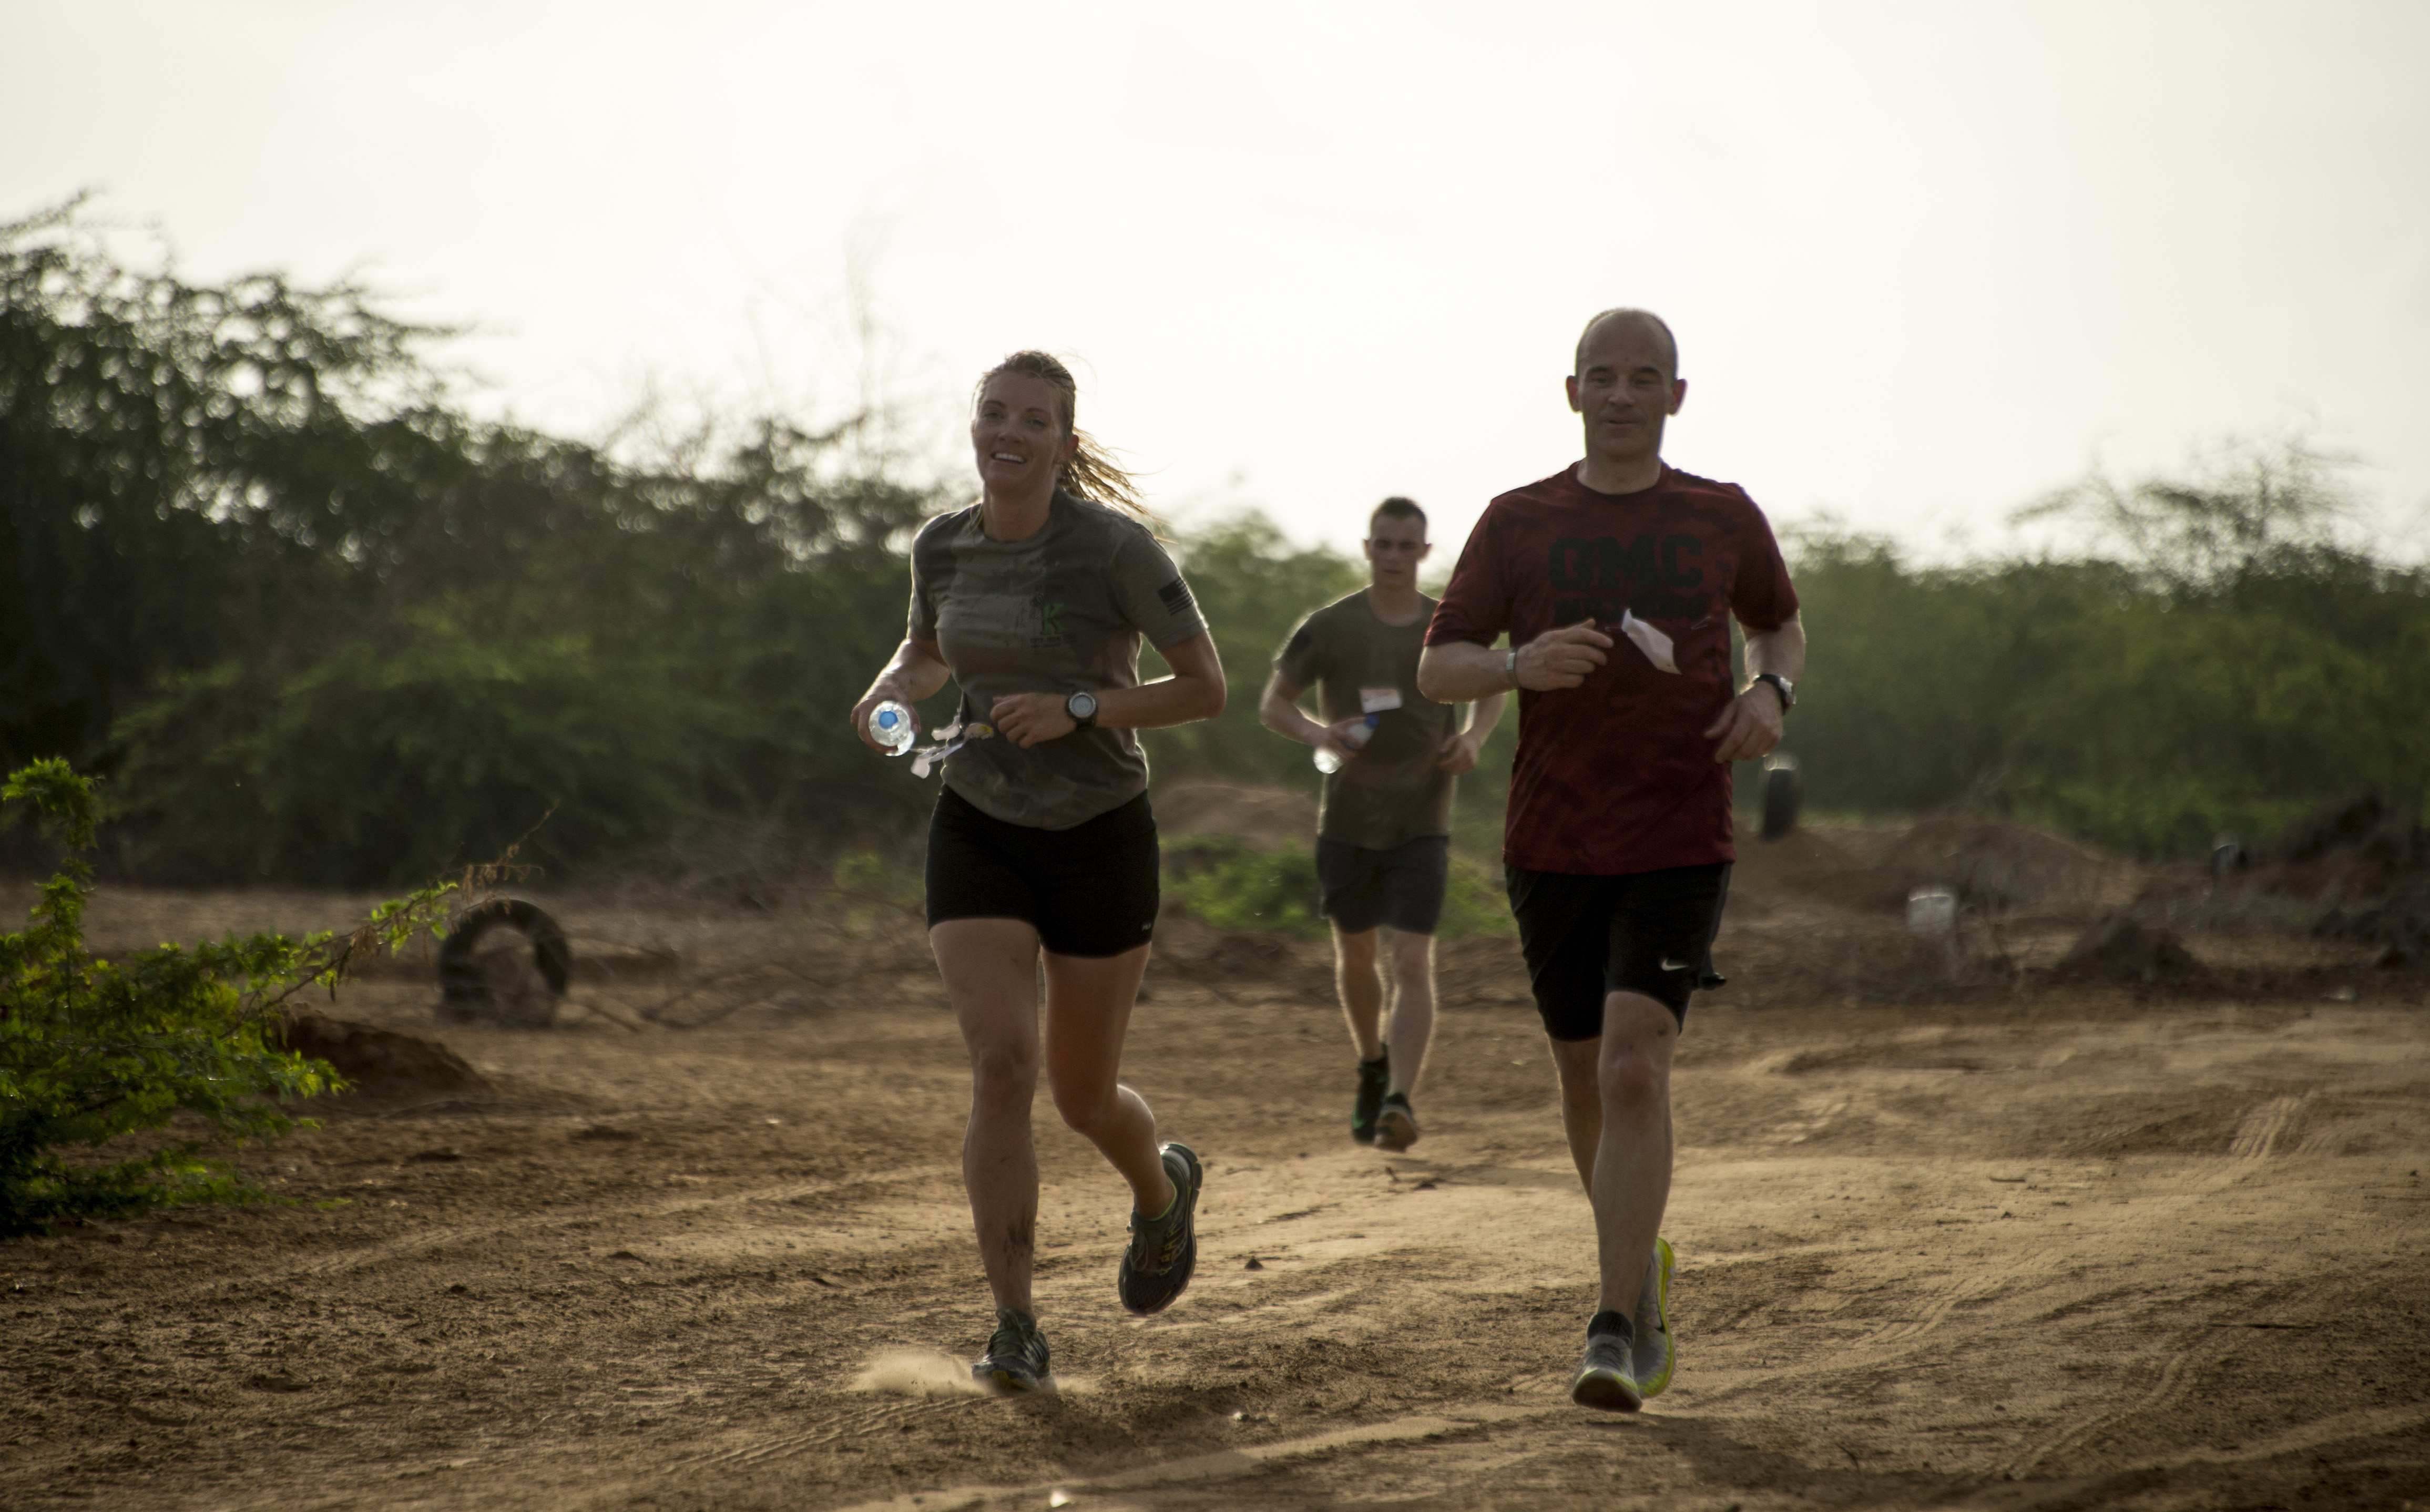 U.S. Air Force 1st Lt. Elizabeth Holloway and U.S. Army Col. Jason Musteen participate in the running portion of the Joint Warrior Competition (JWC) outside of Camp Lemonnier, Djibouti, March 25, 2017. Participants in the JWC test themselves physically in various events including a four kilometer timed run. (U.S. Air National Guard photo by Staff Sgt. Christian Jadot)